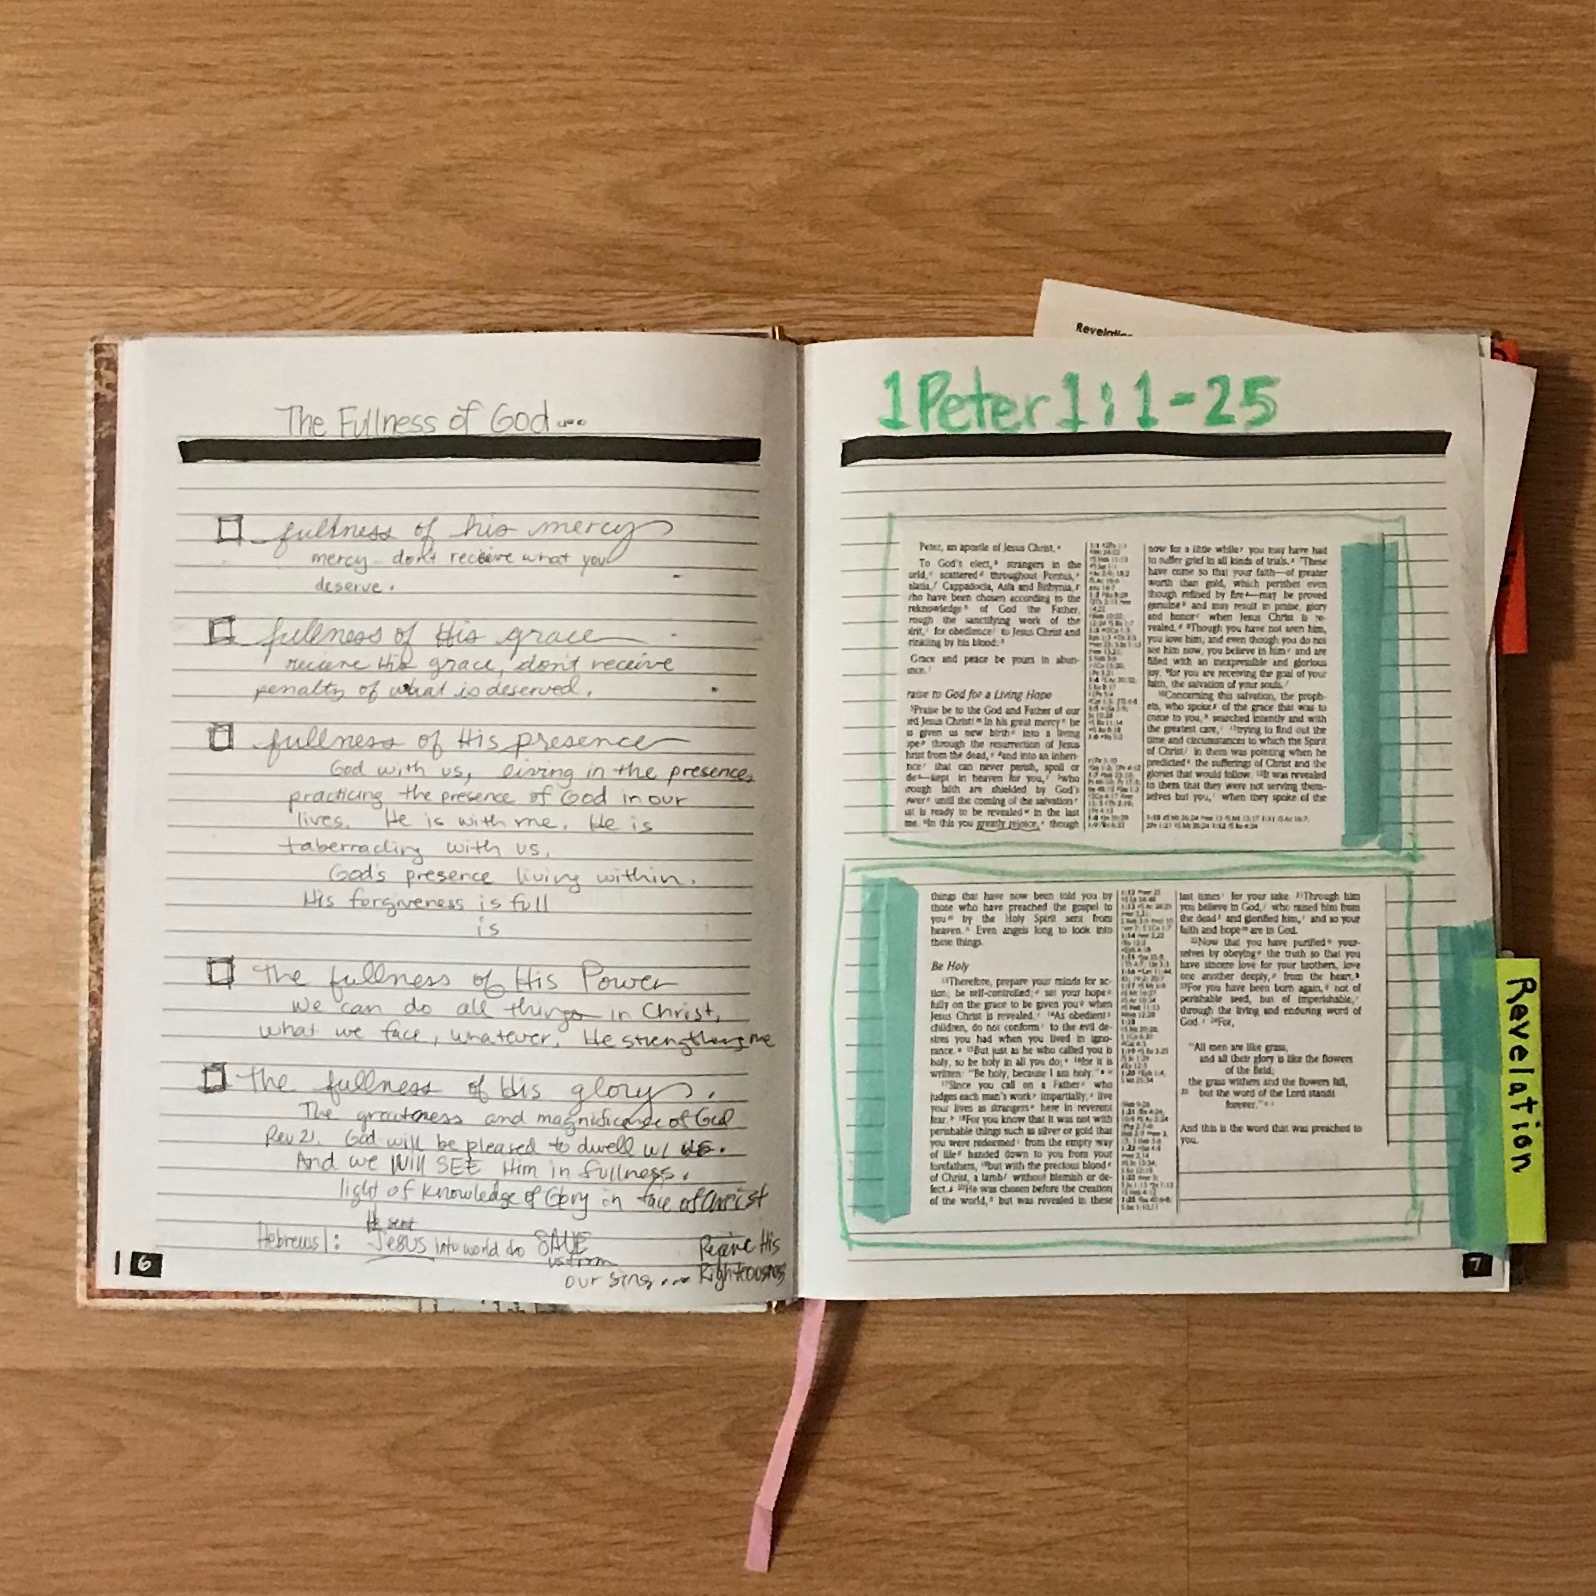 Scripture memory pages printed from Bible for quick access. Washi tape as hinged pages to write out the Scripture behind the panels.